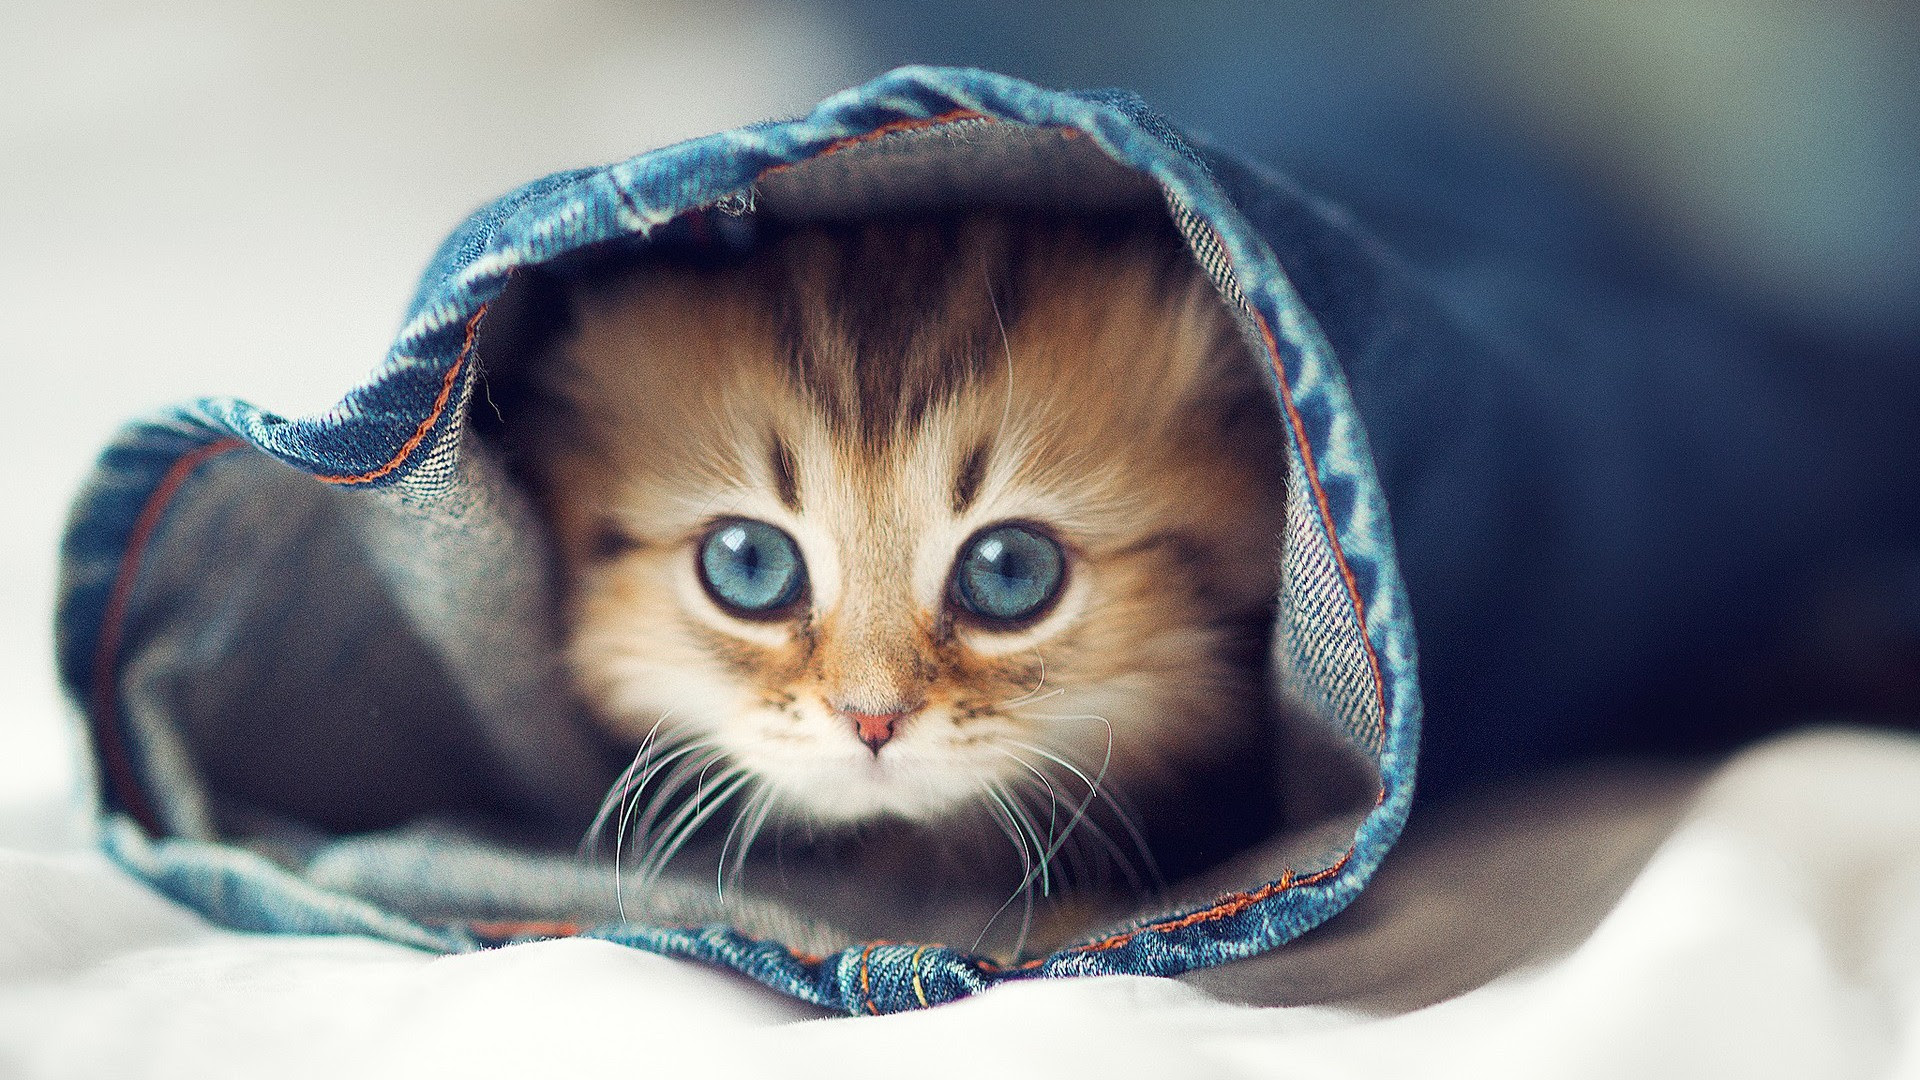 A Cute Cat Wallpaper